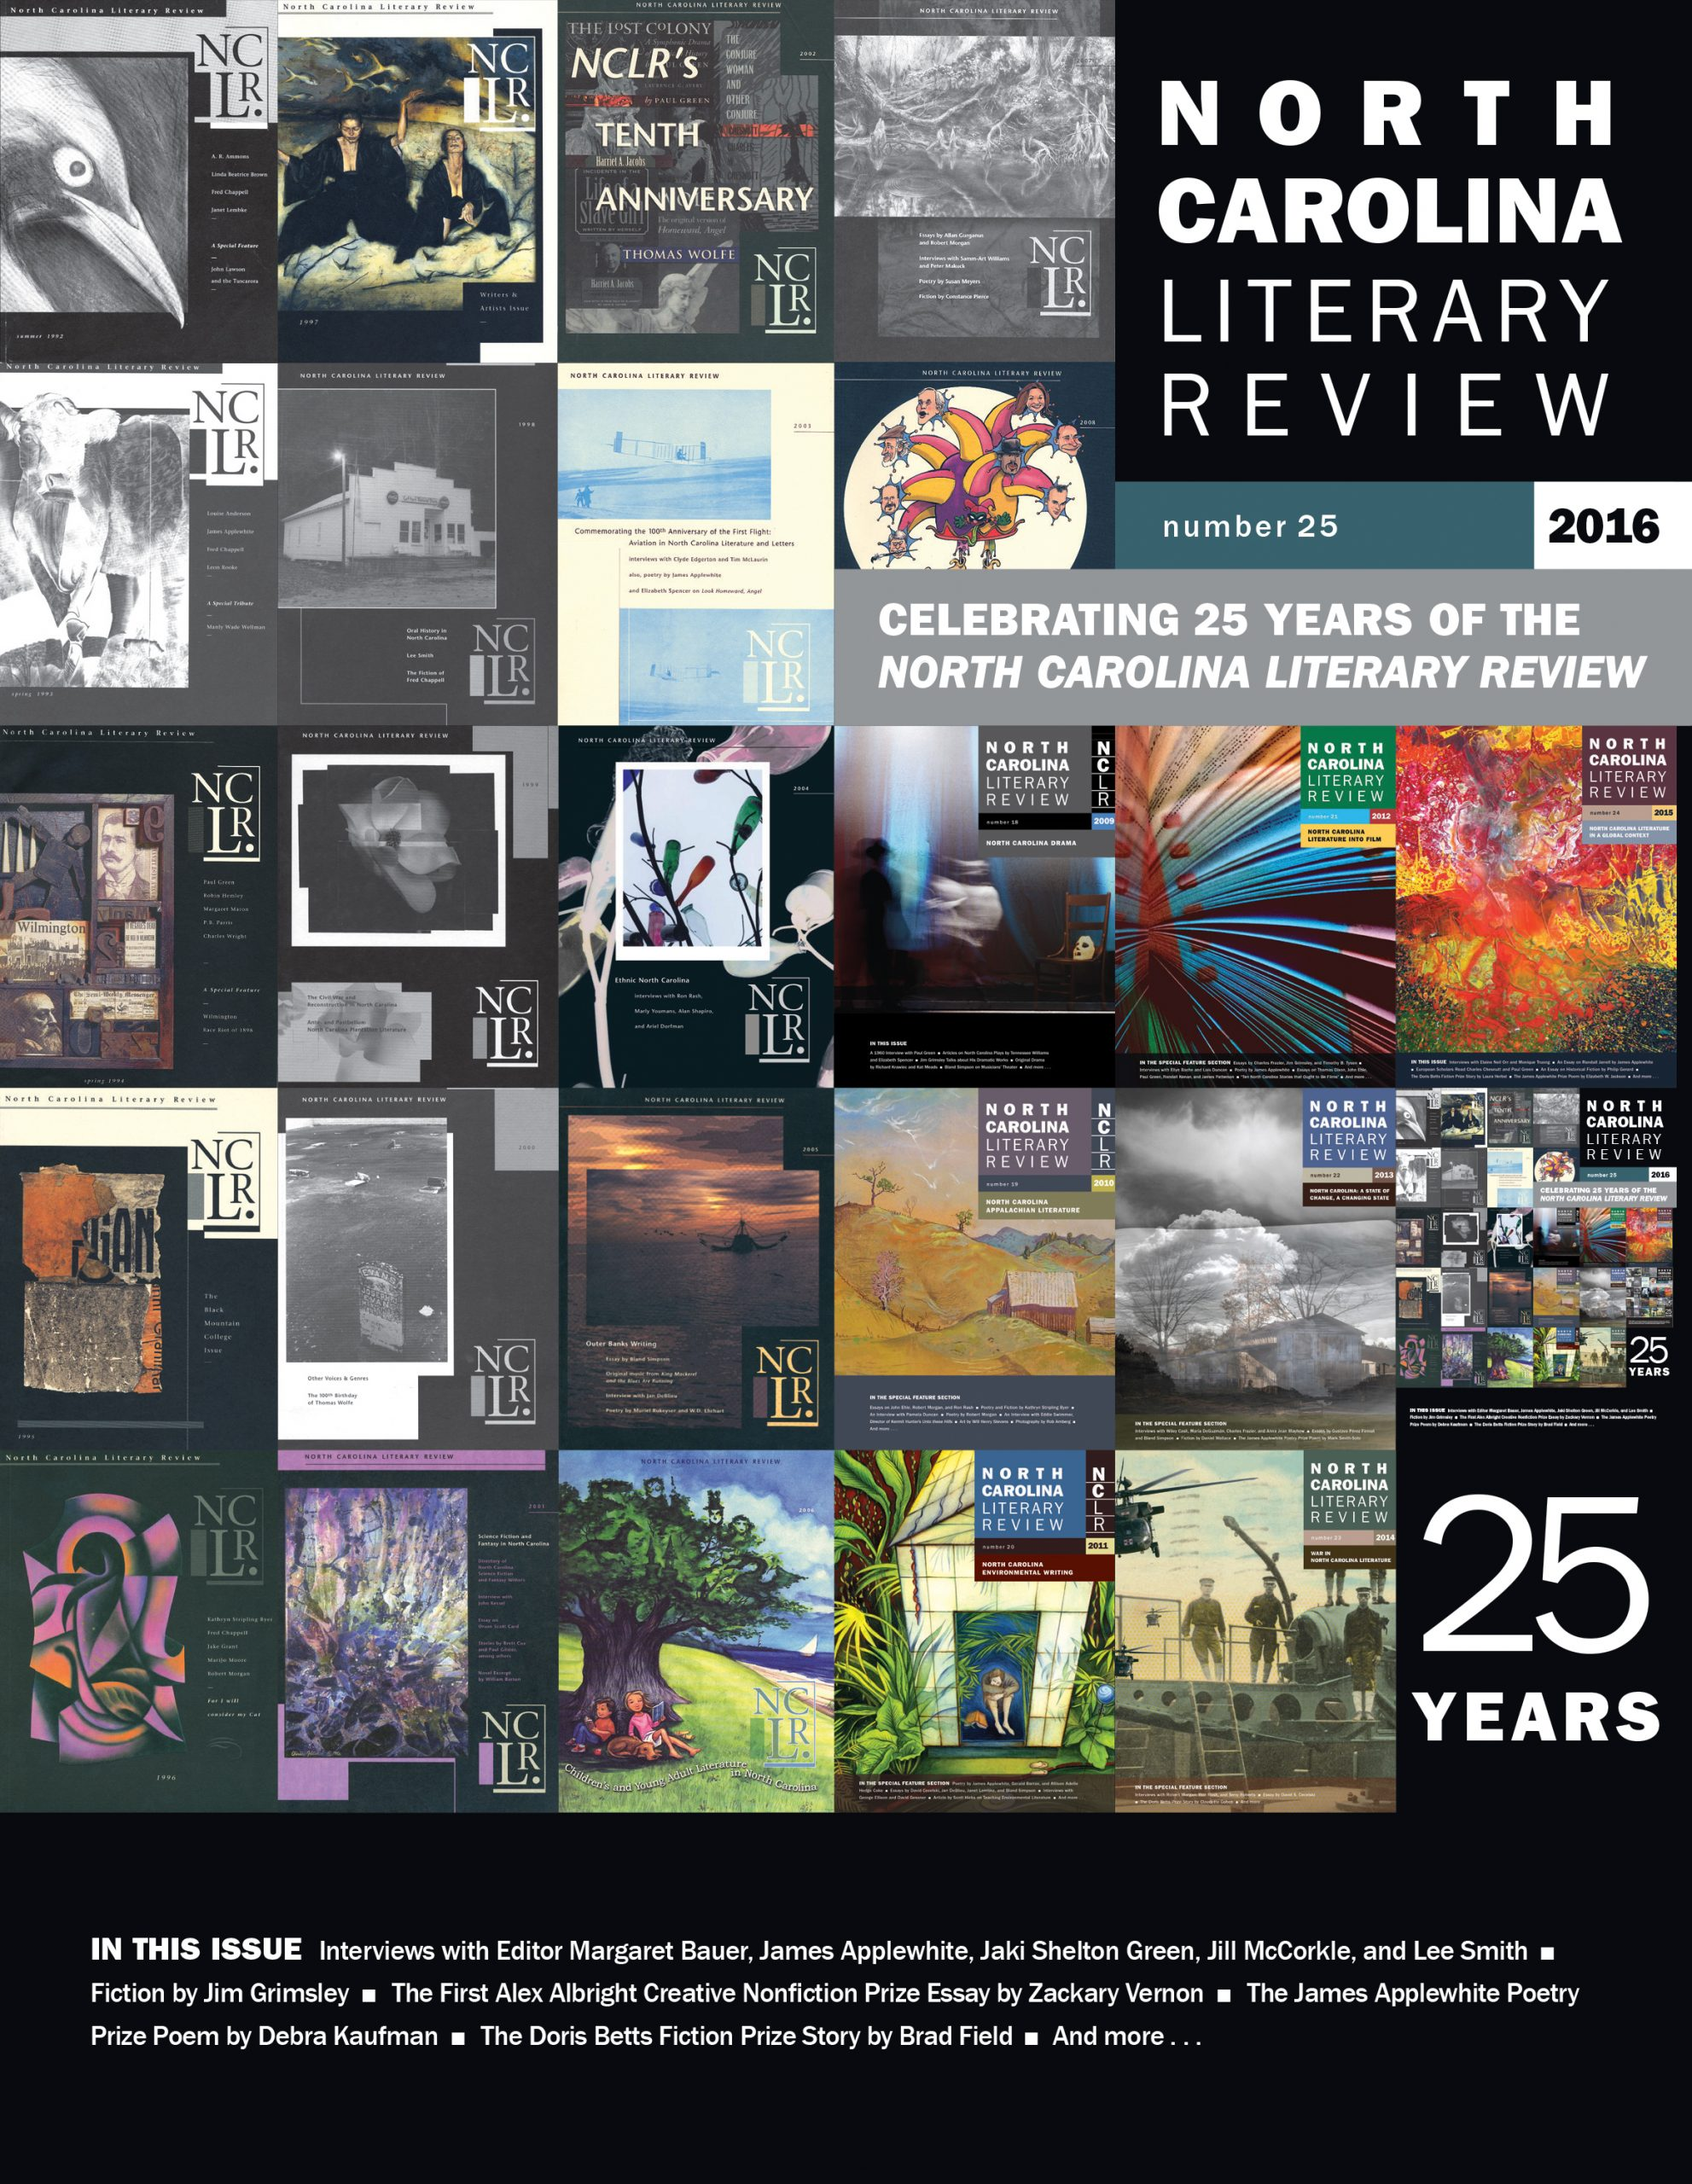 The North Carolina Literary Review Covers